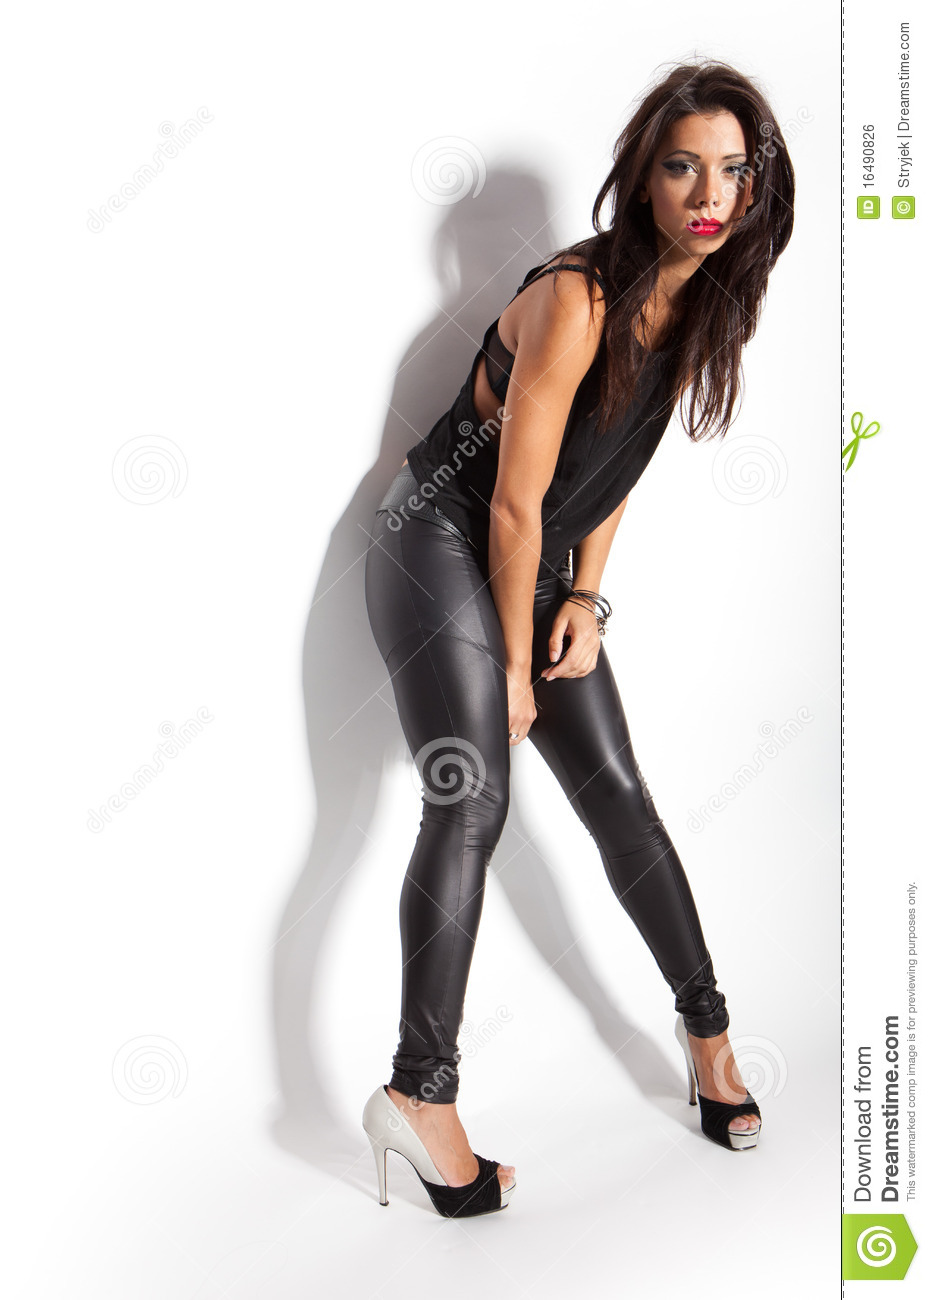 Female fashion model stock photo. Image of contact, adult ...